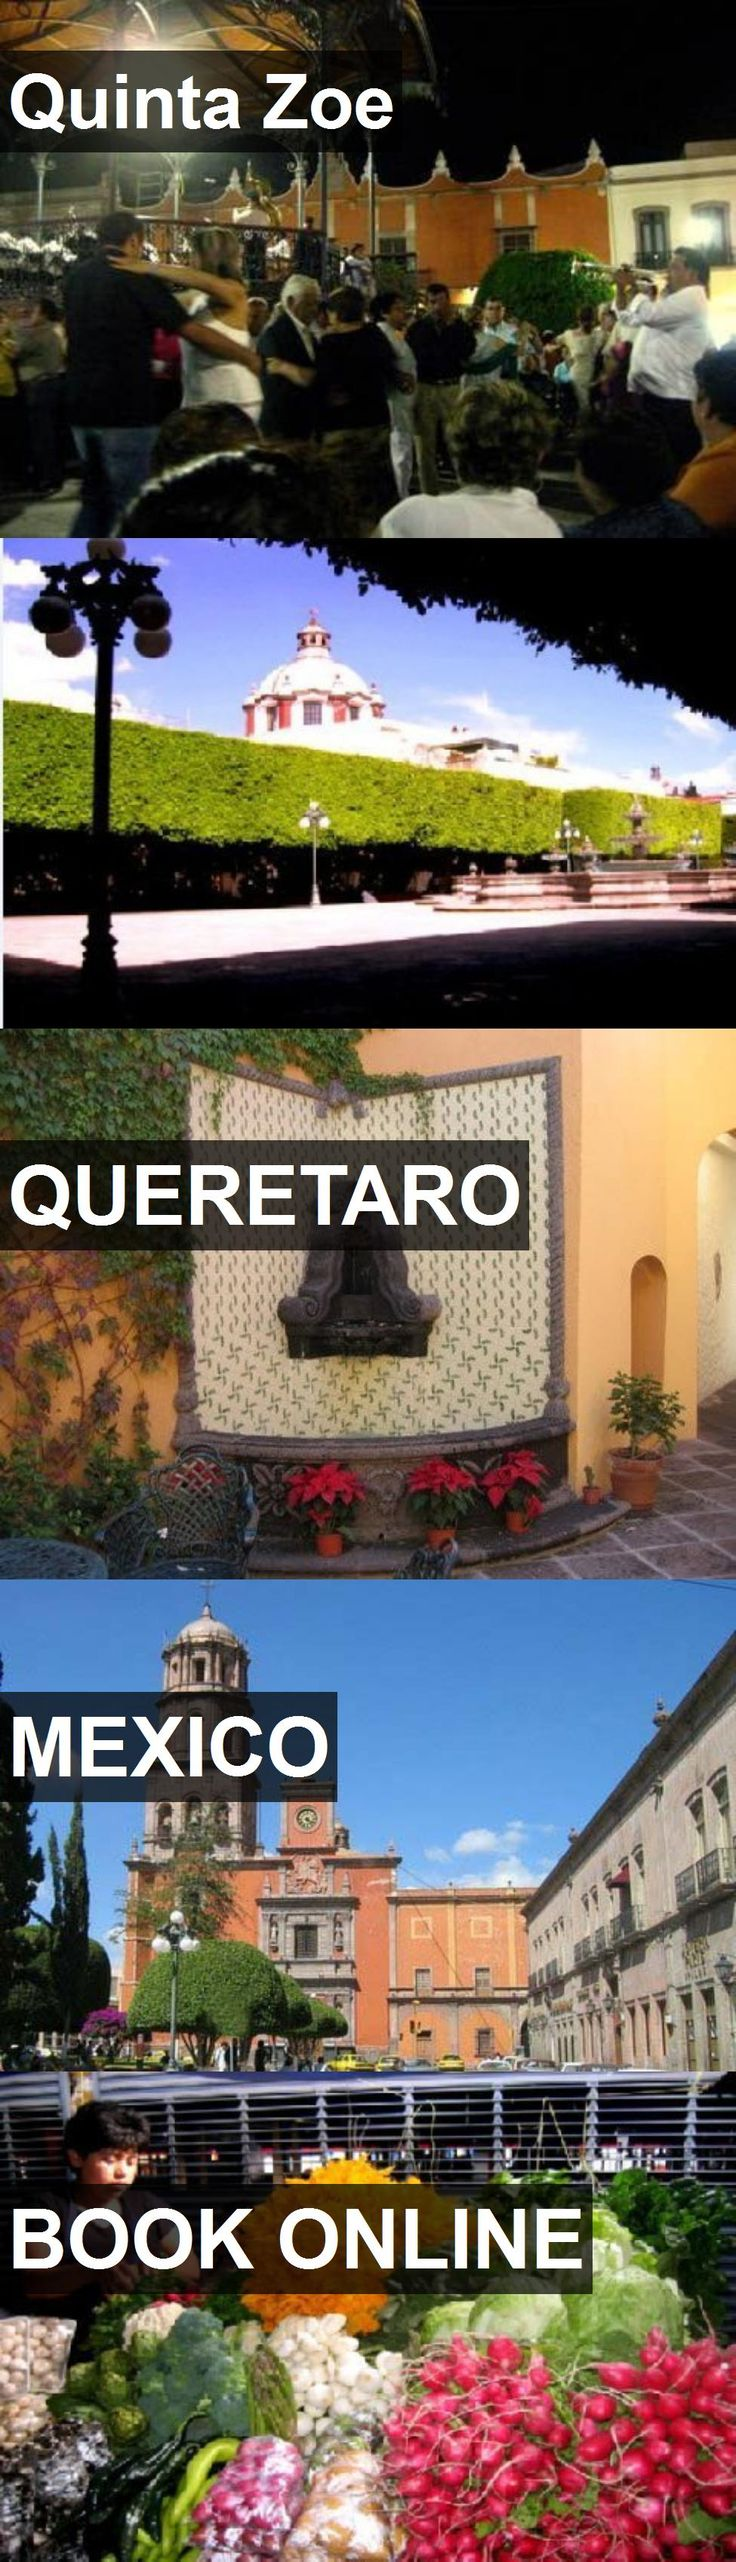 Hotel Quinta Zoe in Queretaro, Mexico. For more information, photos, reviews and best prices please follow the link. #Mexico #Queretaro #QuintaZoe #hotel #travel #vacation